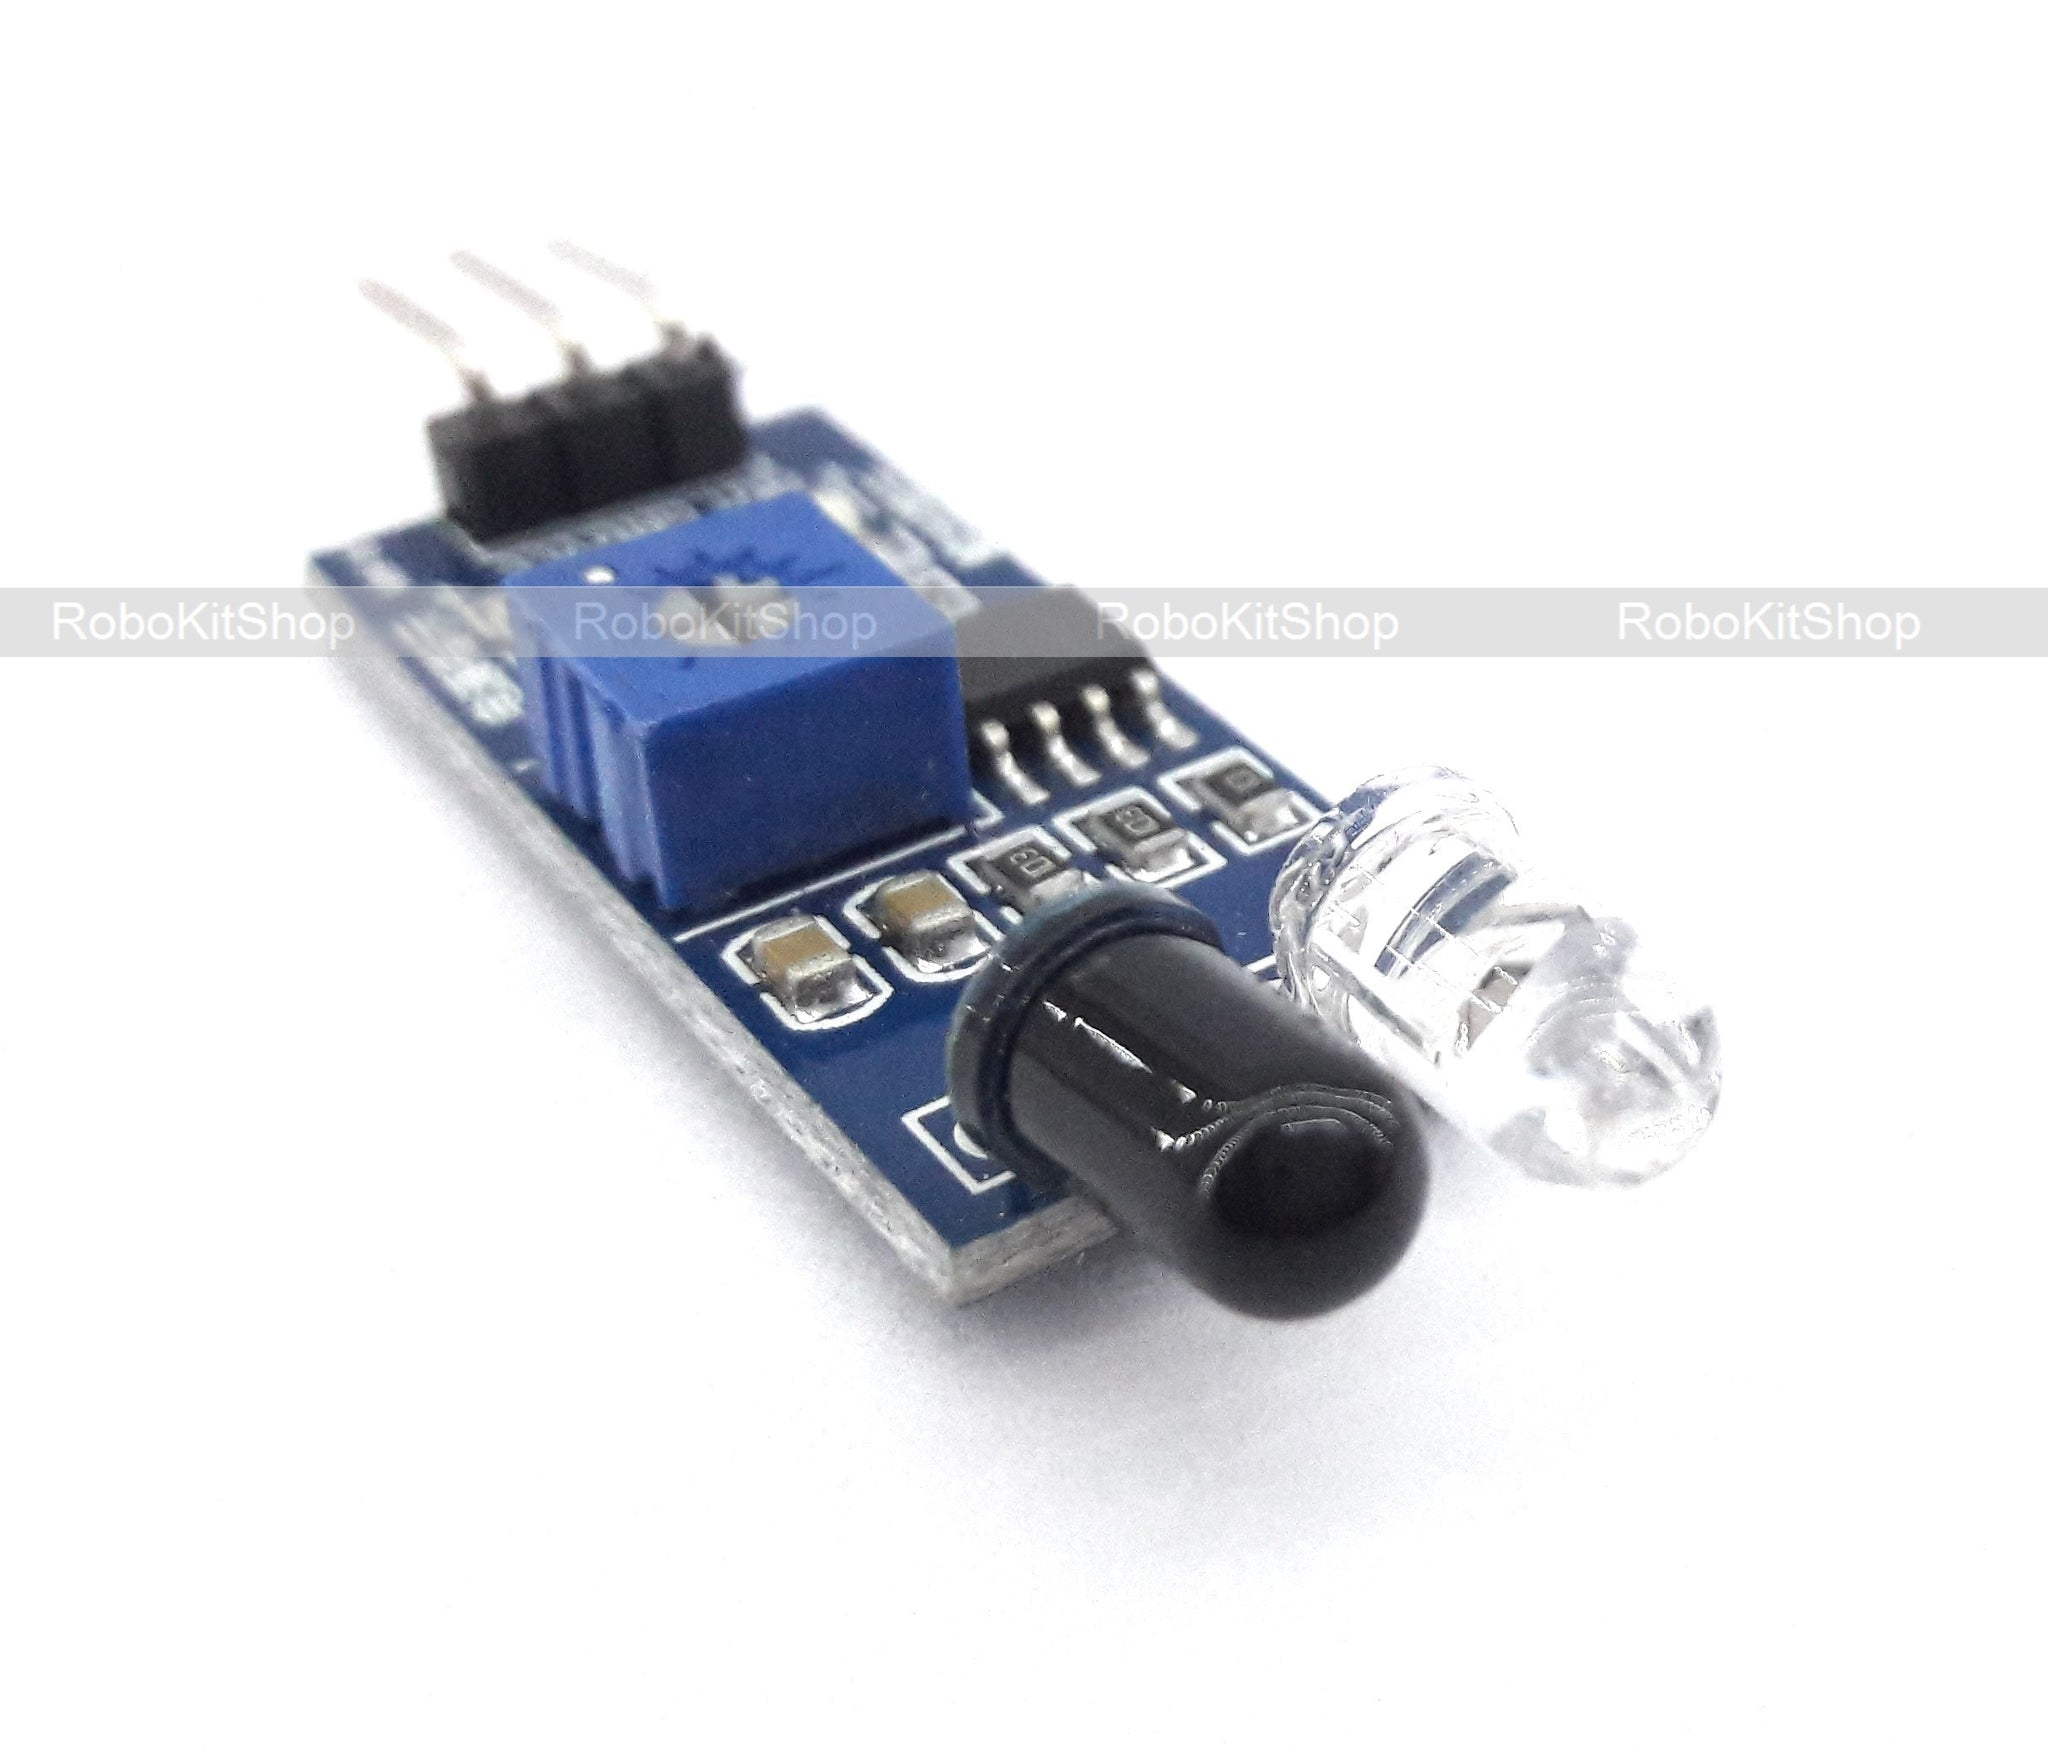 Infrared Distance Sensor Arduino Ir Proximity Pieces Obstacle Line Module For Avr Pic Car Robot 2048x1752